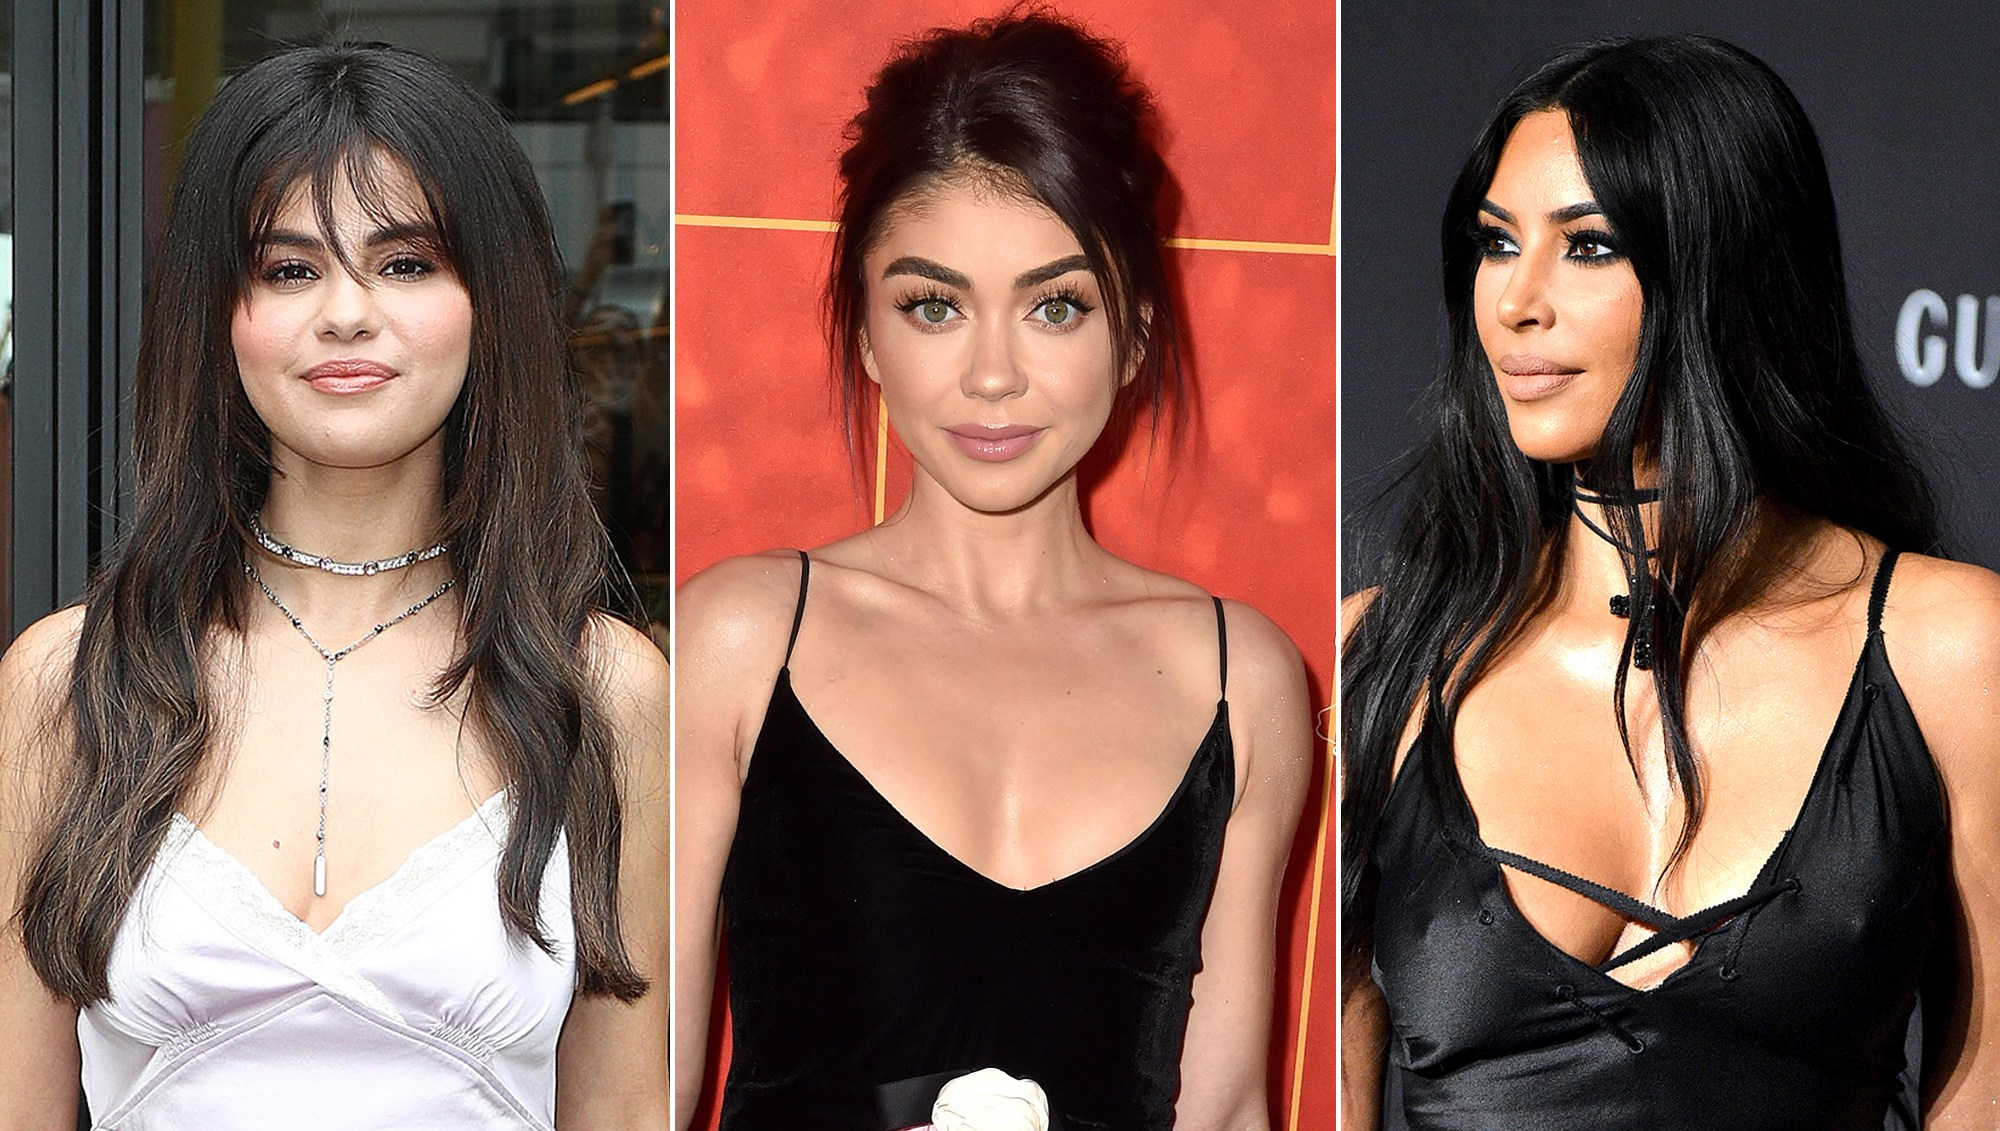 Selena Gomez, Sarah Hyland, Kim Kardashian and More Celebrities Who Took a Break From Social Media